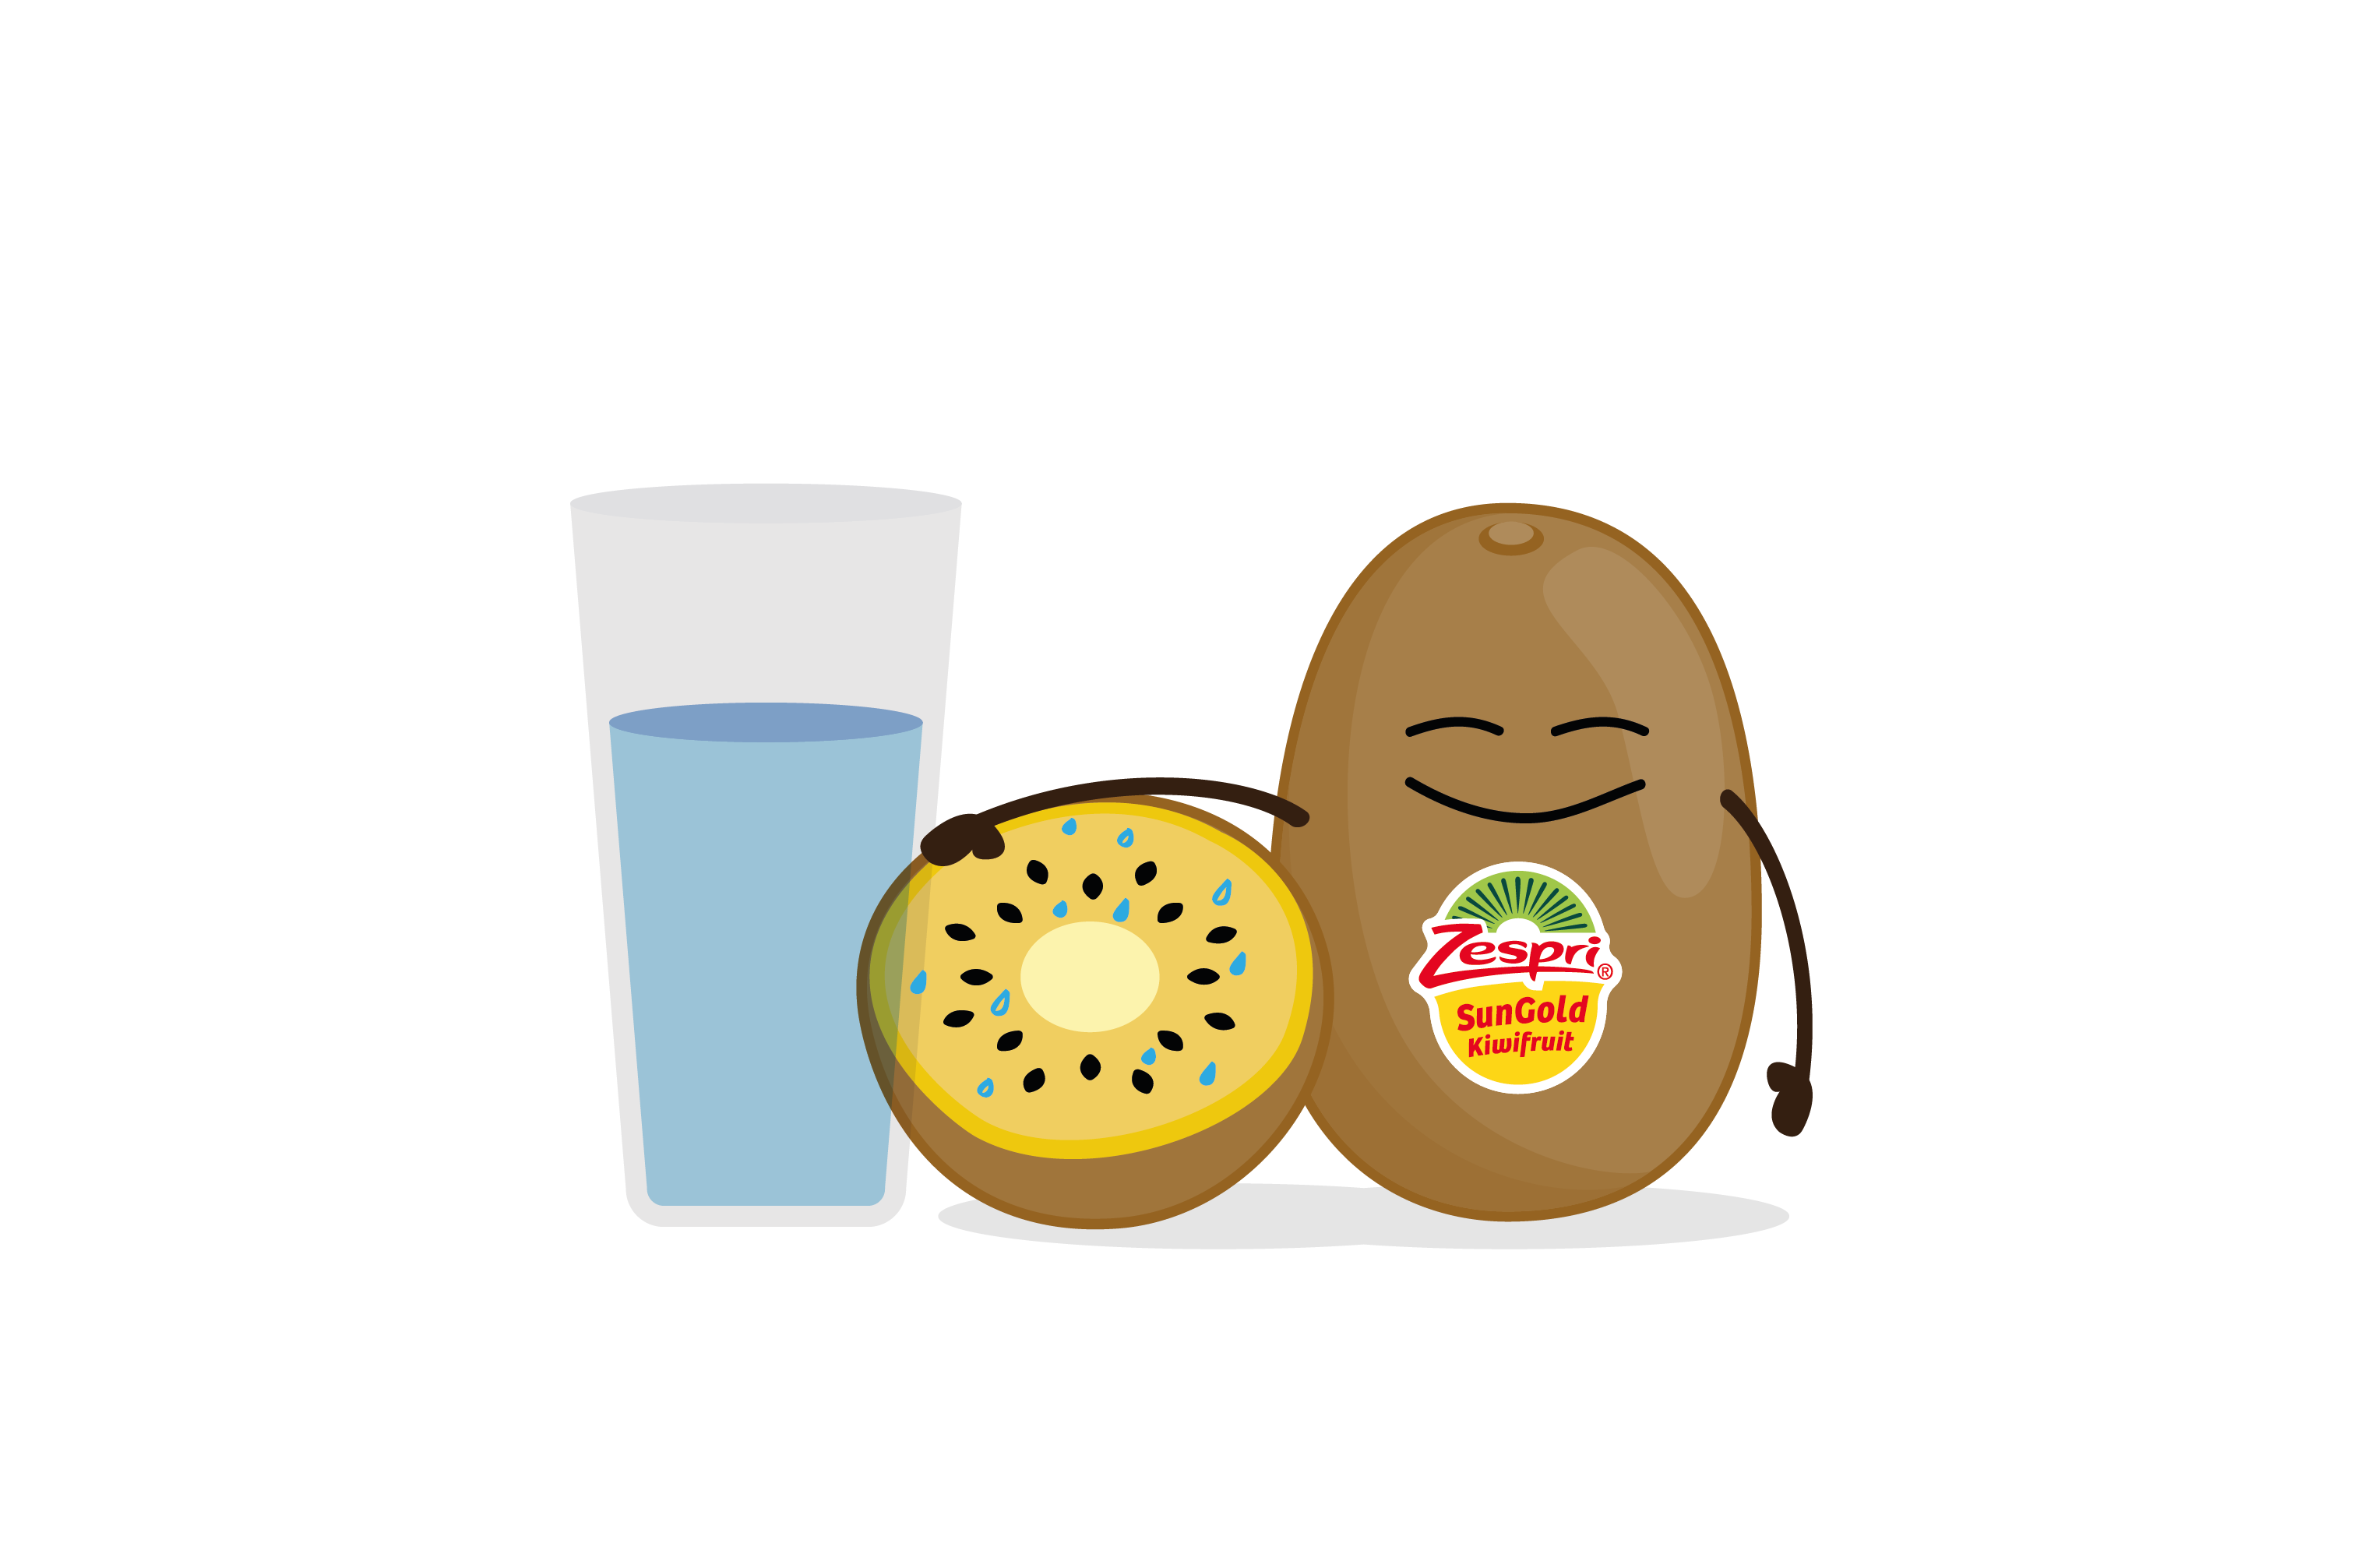 week32_Zespri_SunGold_kiwifruit_is_a_natural_source_of_water.png